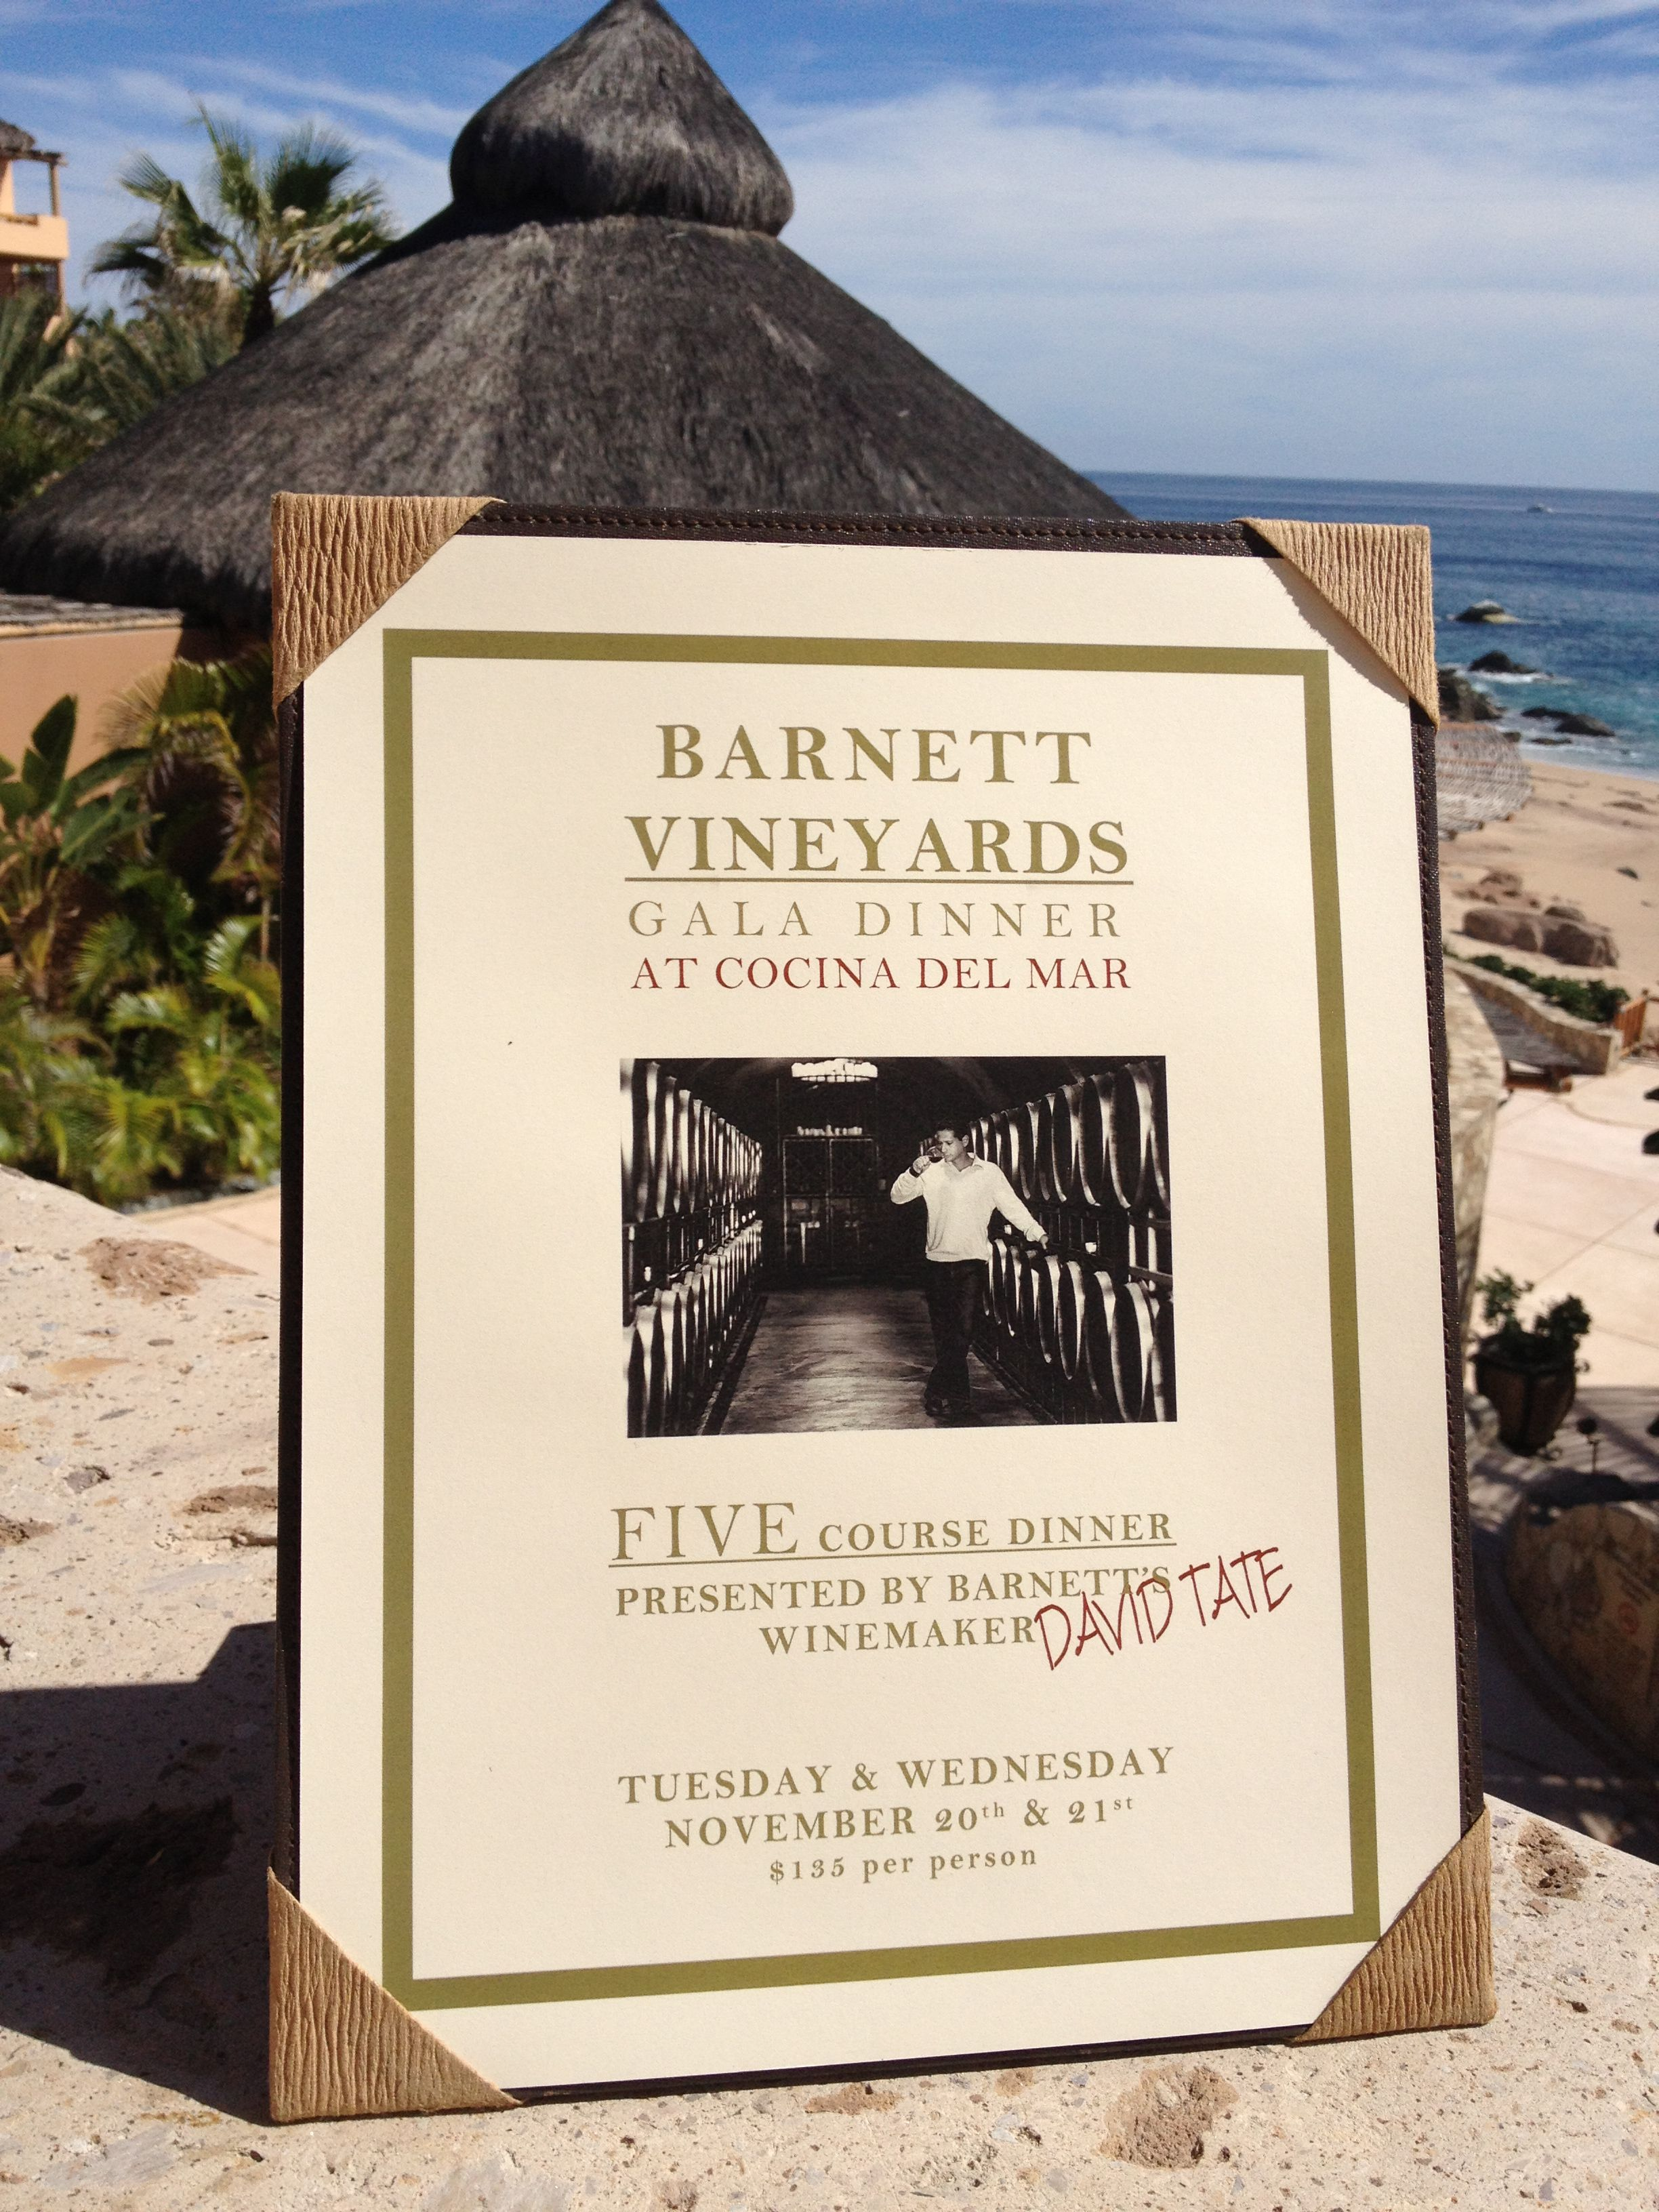 Join us & #BarnettVineyard for a Gala dinner 11/20 and 11/21 at the Cocina del Mar #Cabo